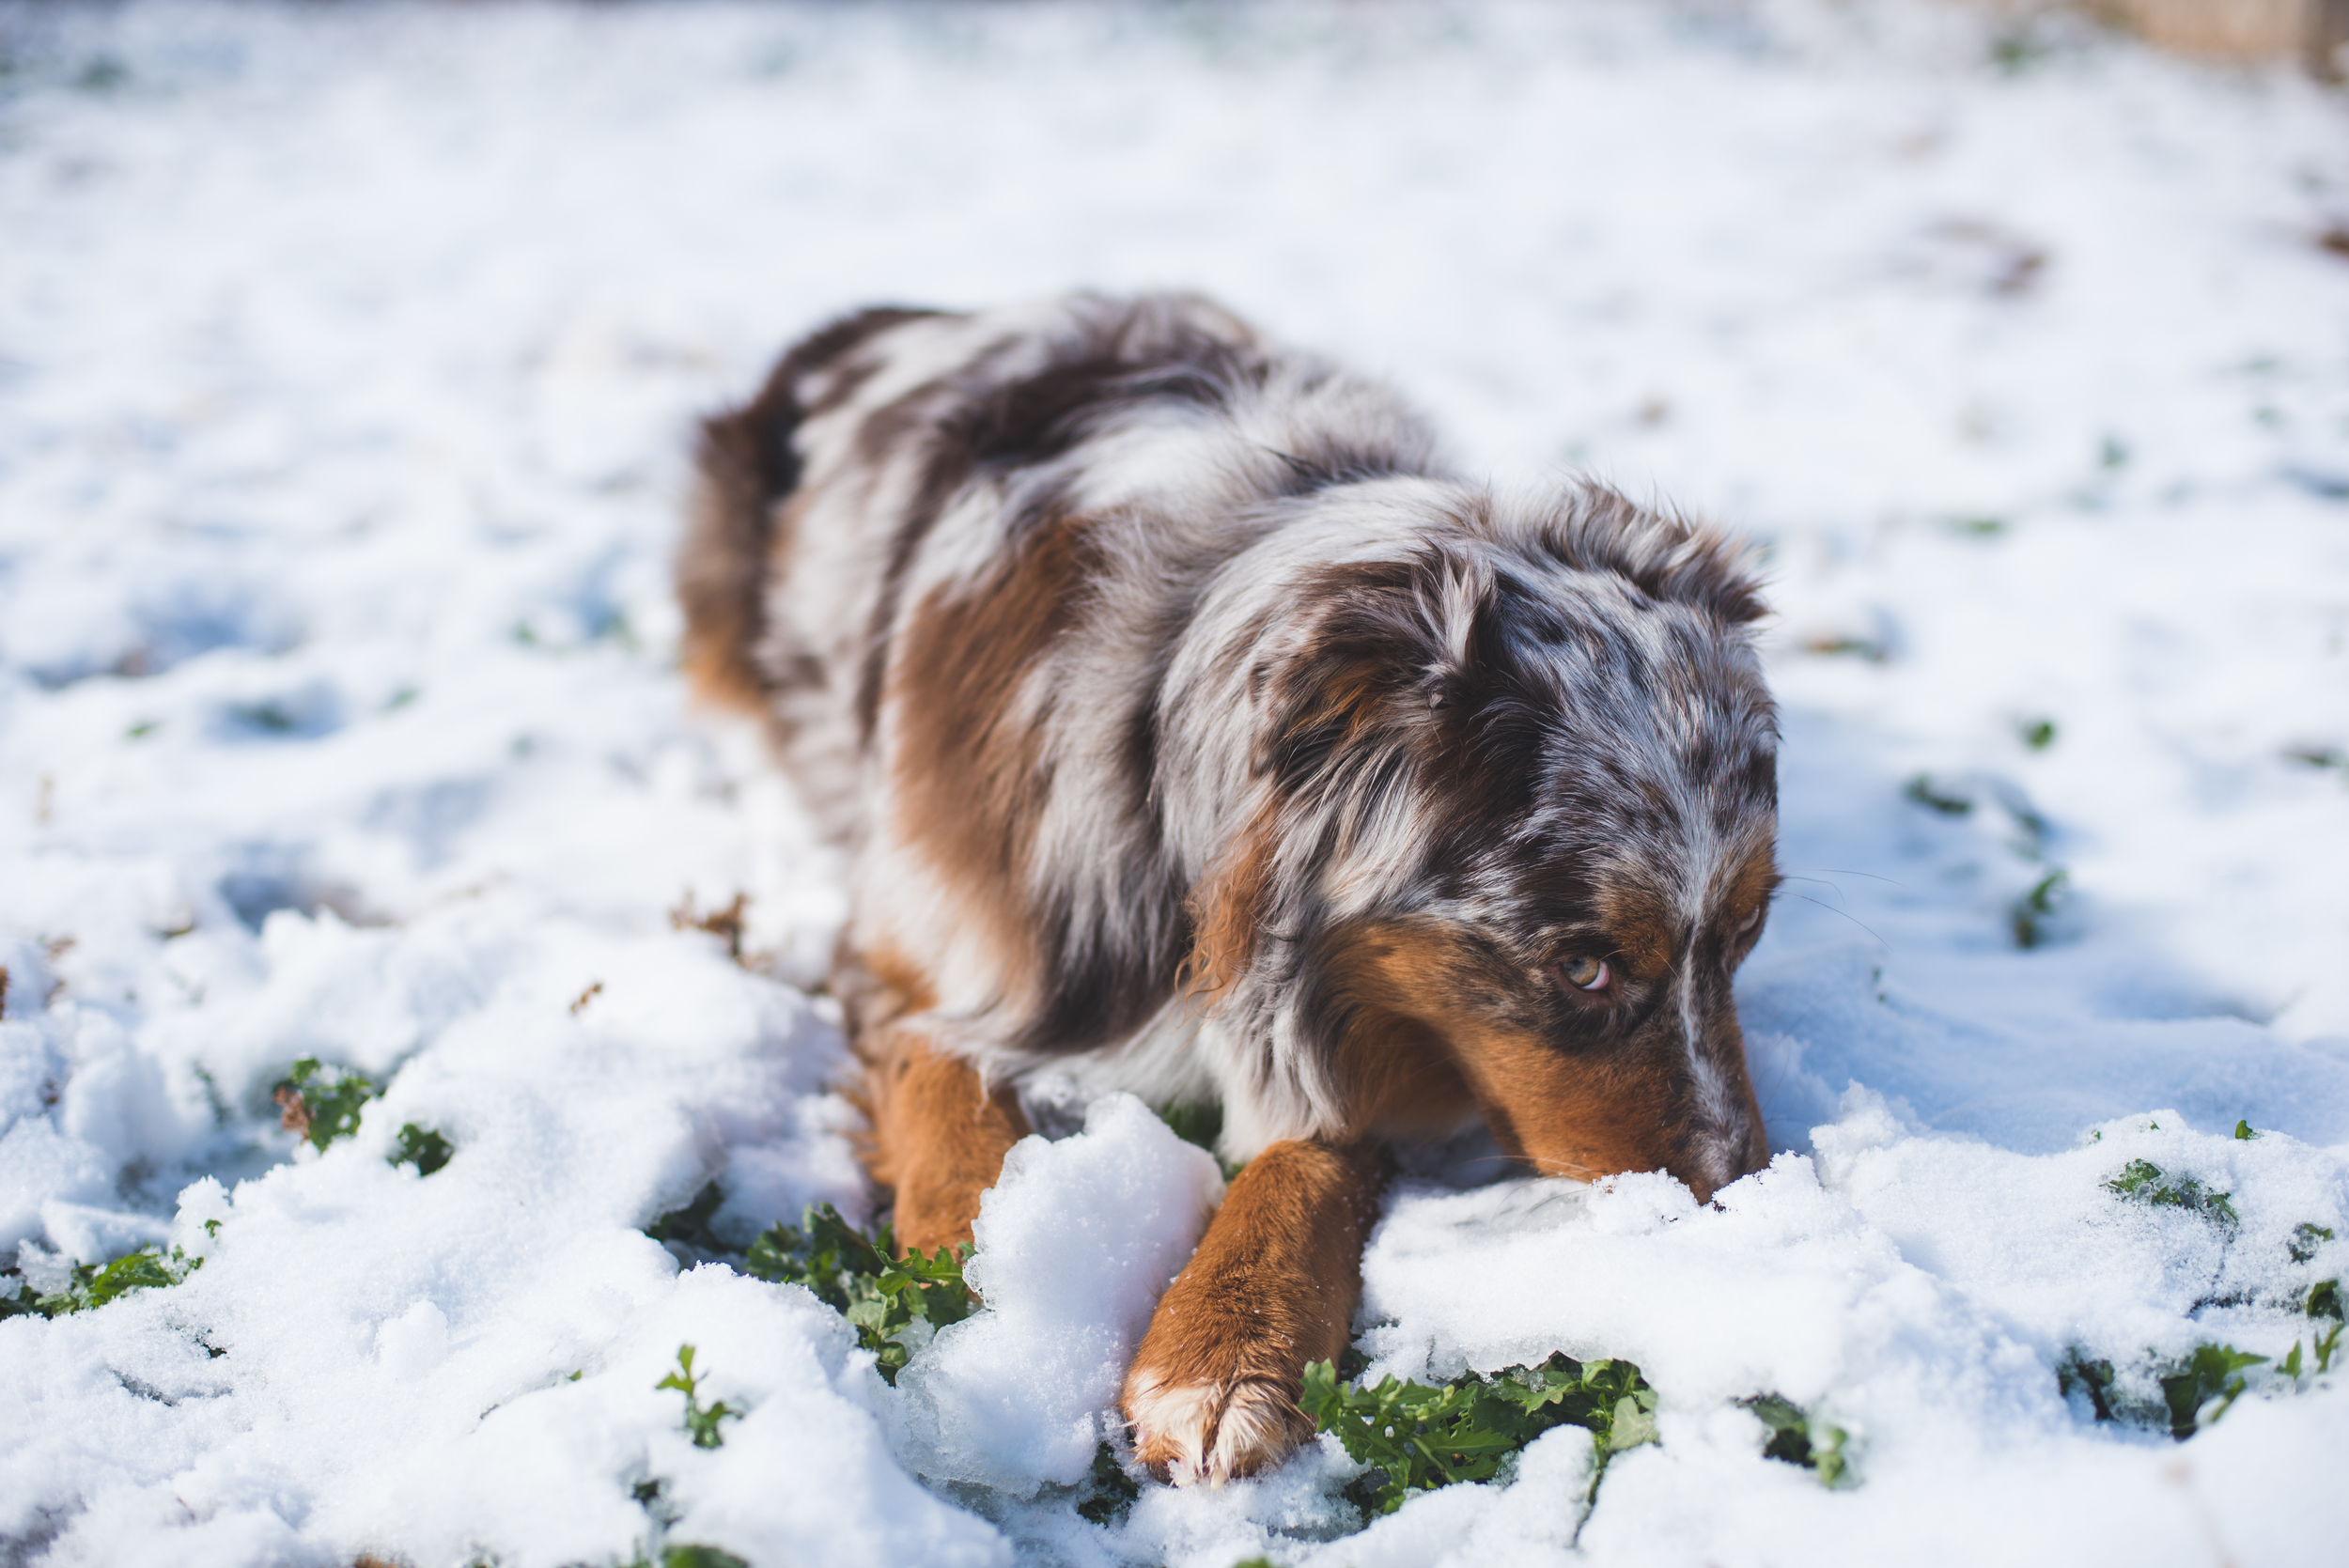 Snow is this little one's absolute favorite. She couldn't be bothered as she tried to eat all of it!